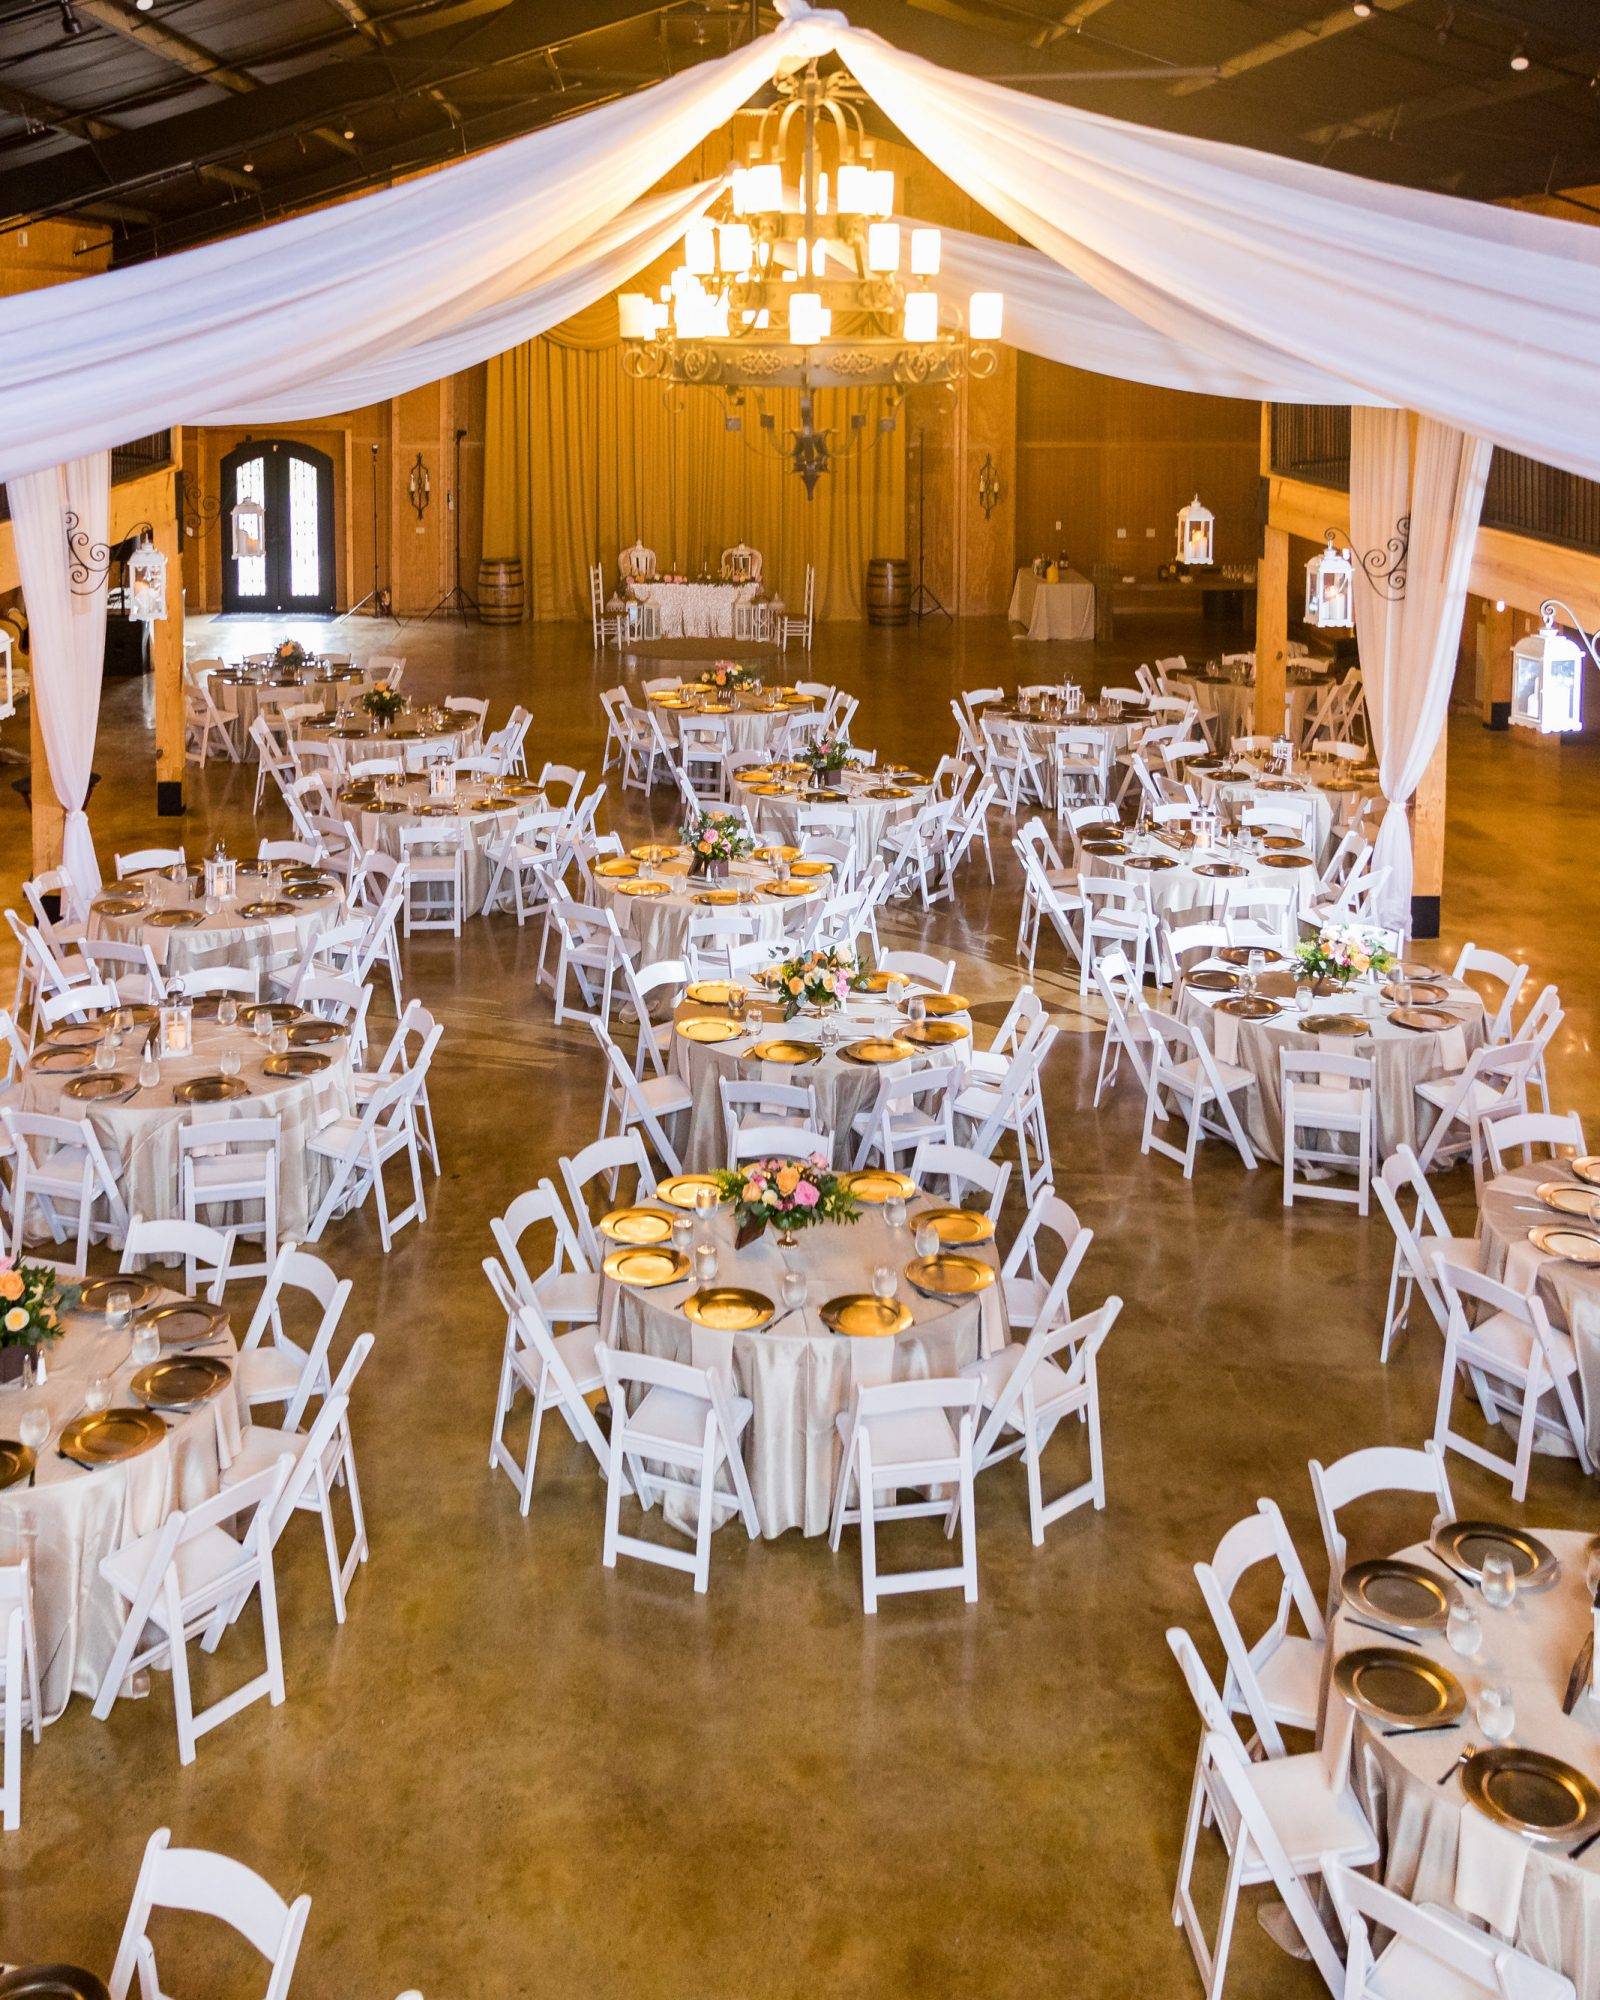 cara chamique wedding reception from above with set tables